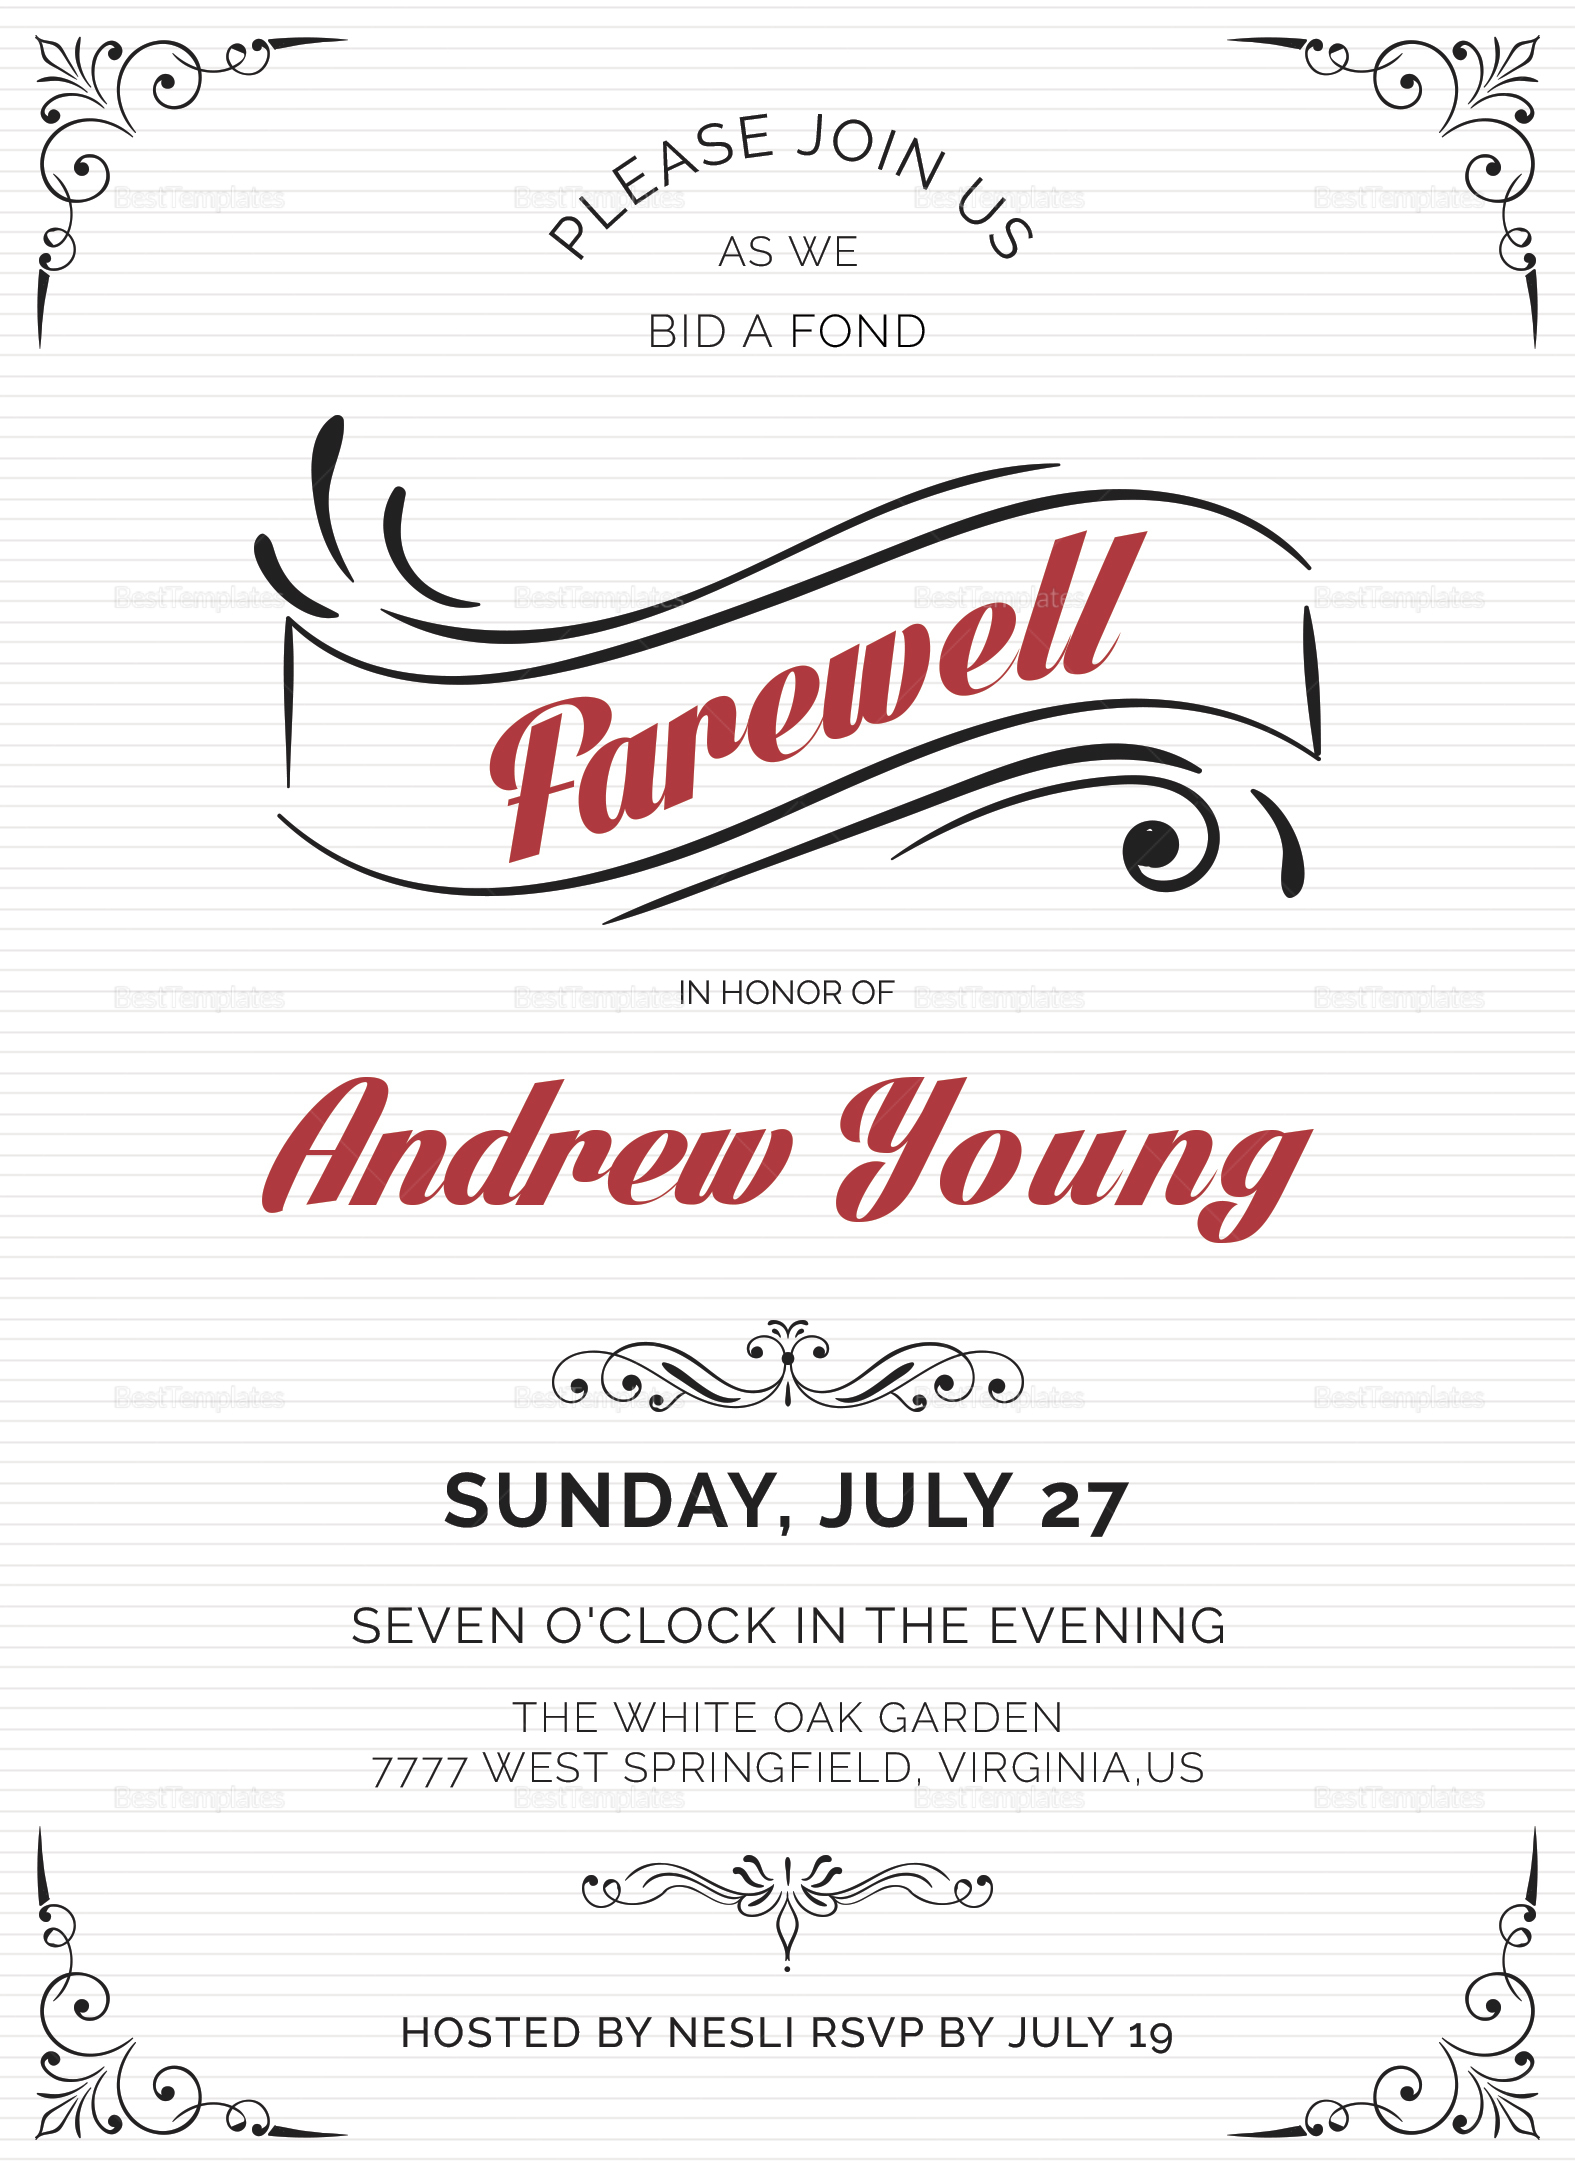 Elegant Farewell Party Invitation Design Template in Word PSD